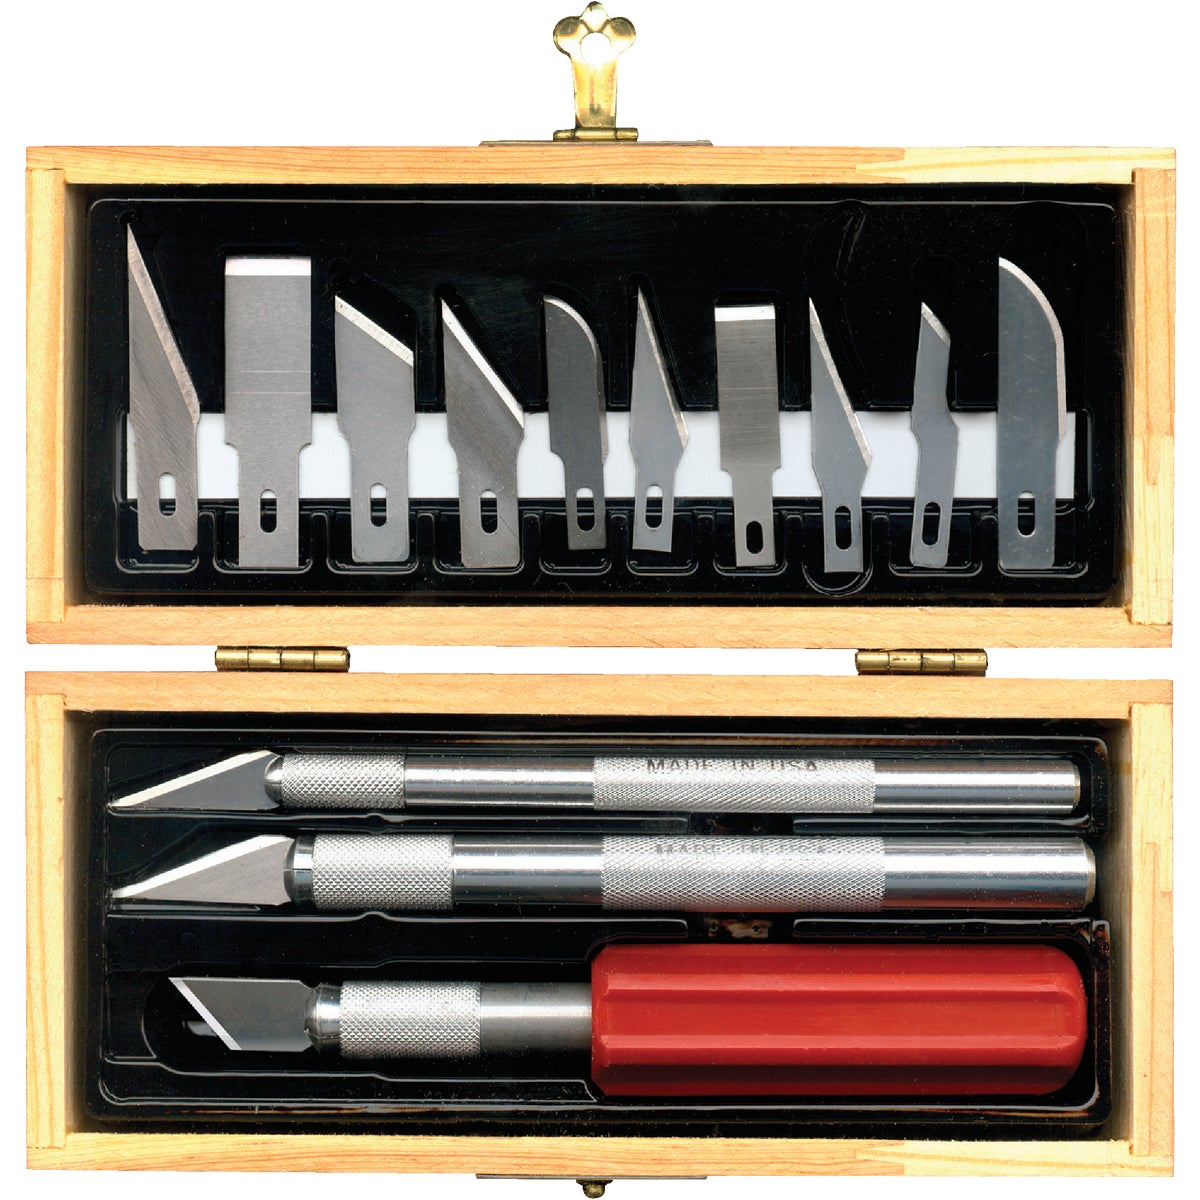 HOBBY KNIFE SET - 01-801 by Techni Edge Mfg Corp